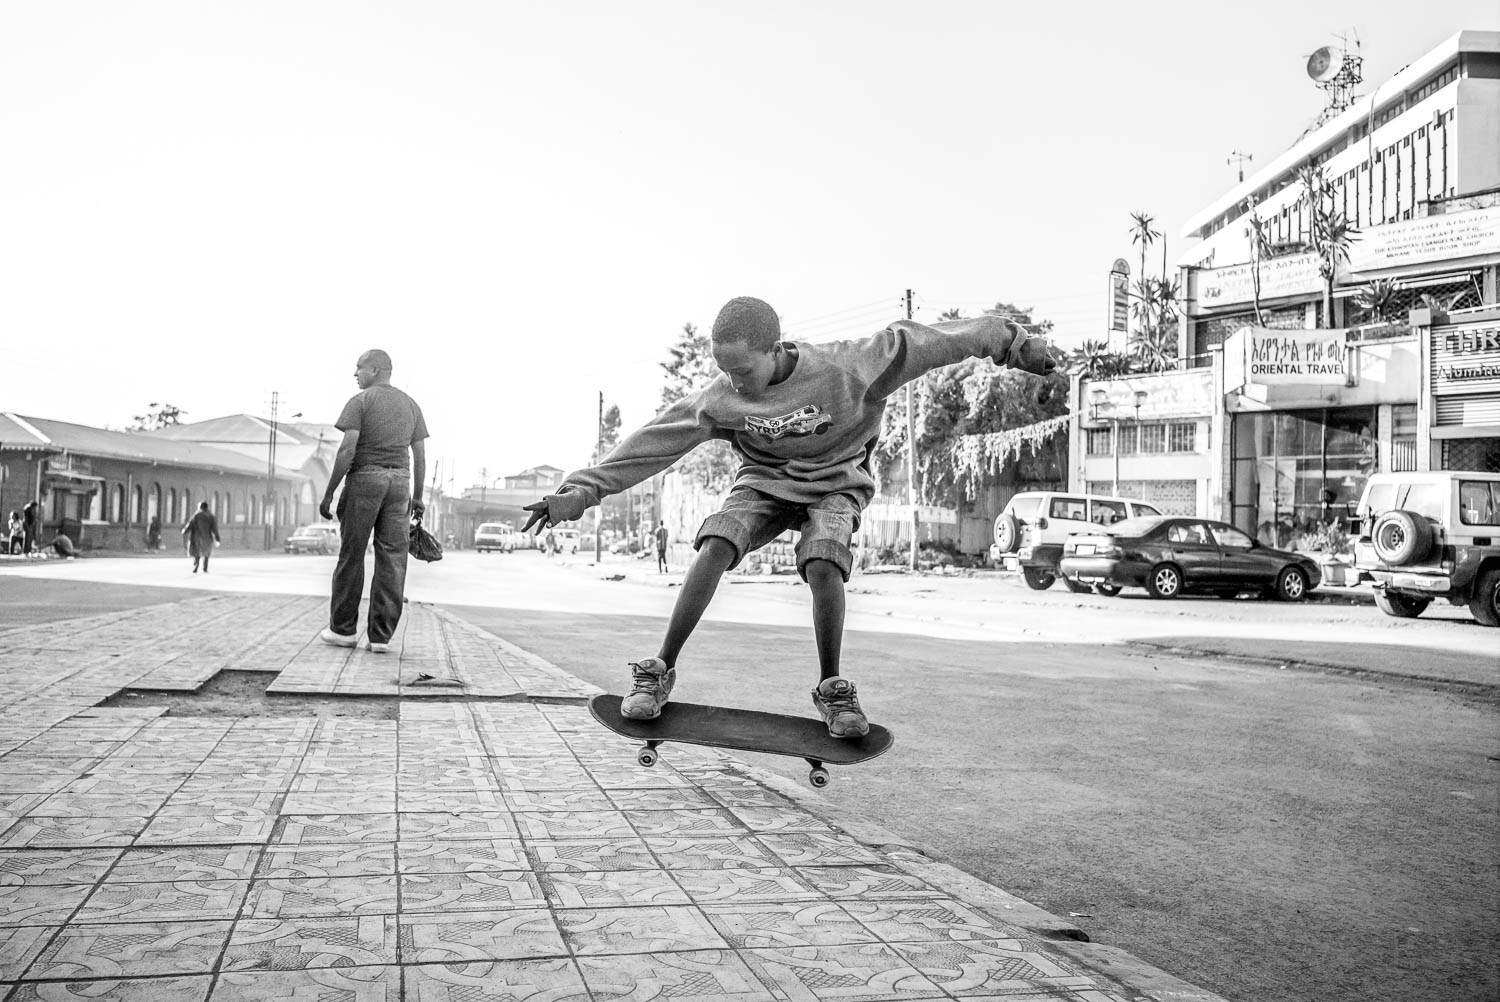 One for the diary: Ethiopia Skate – photography by Daniel Reiter at Rich Mix